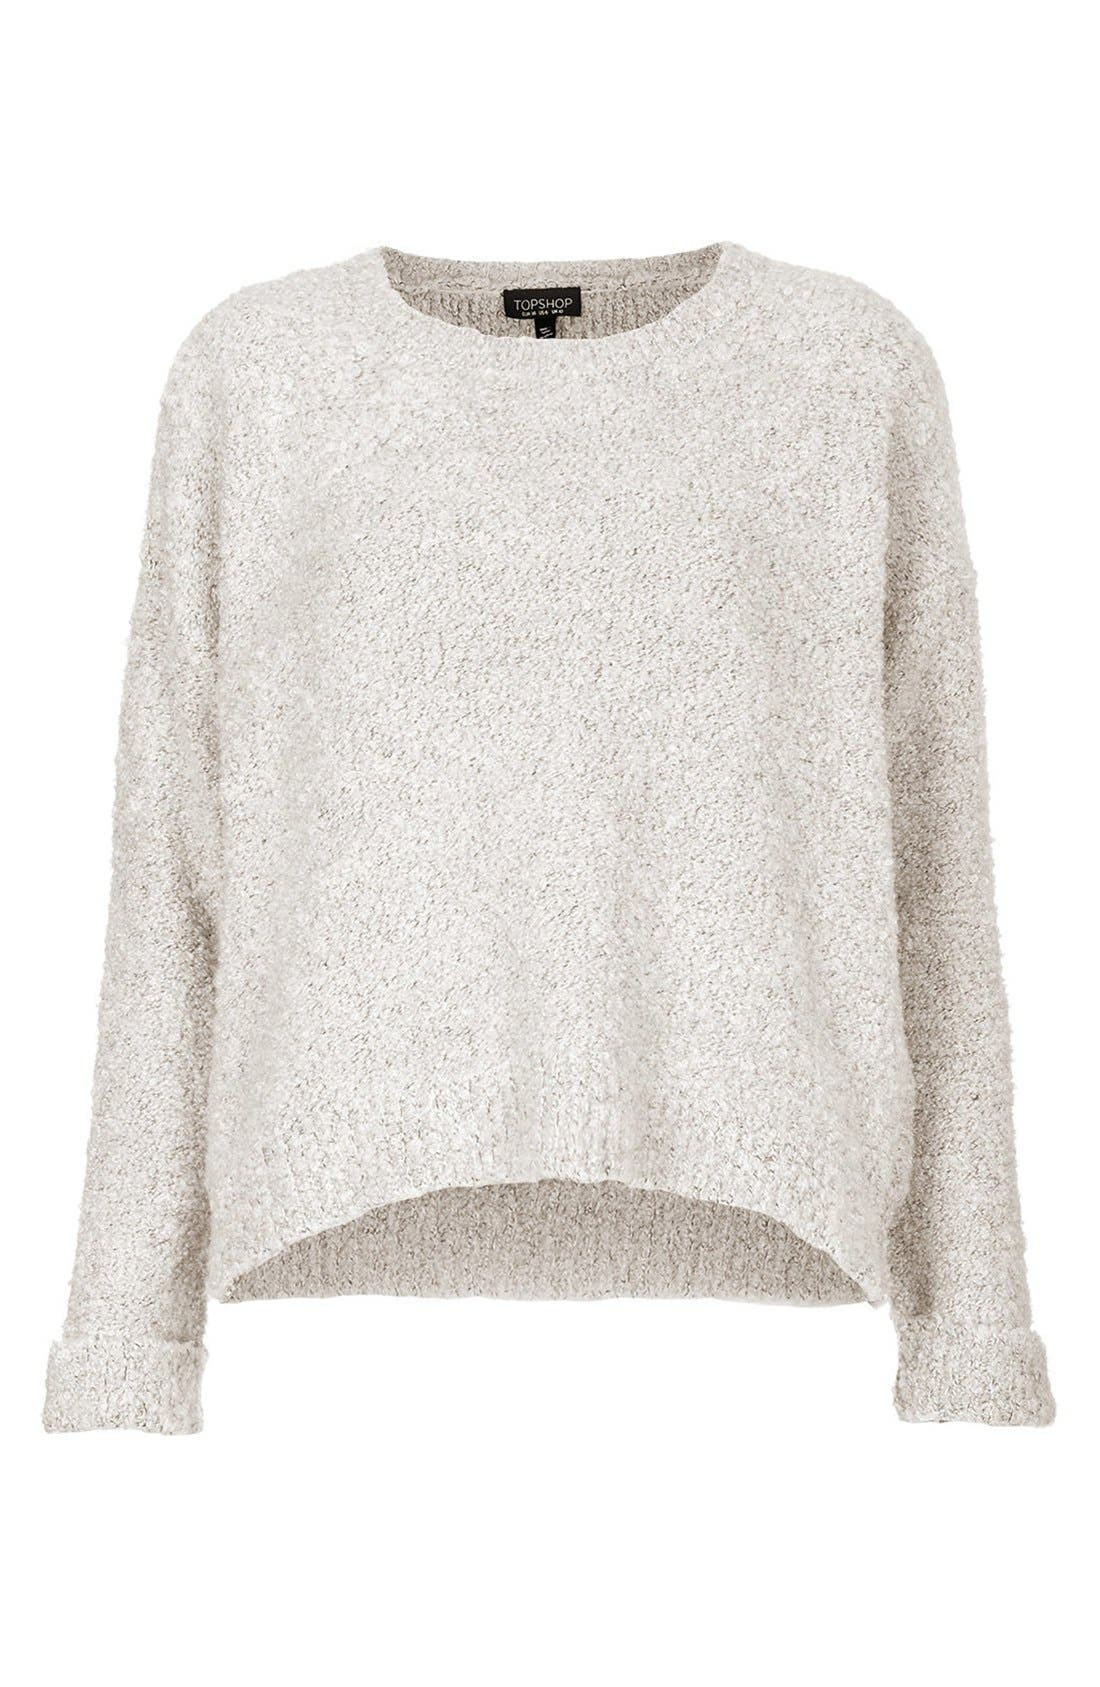 Bouclé Knit Sweater,                             Alternate thumbnail 3, color,                             White